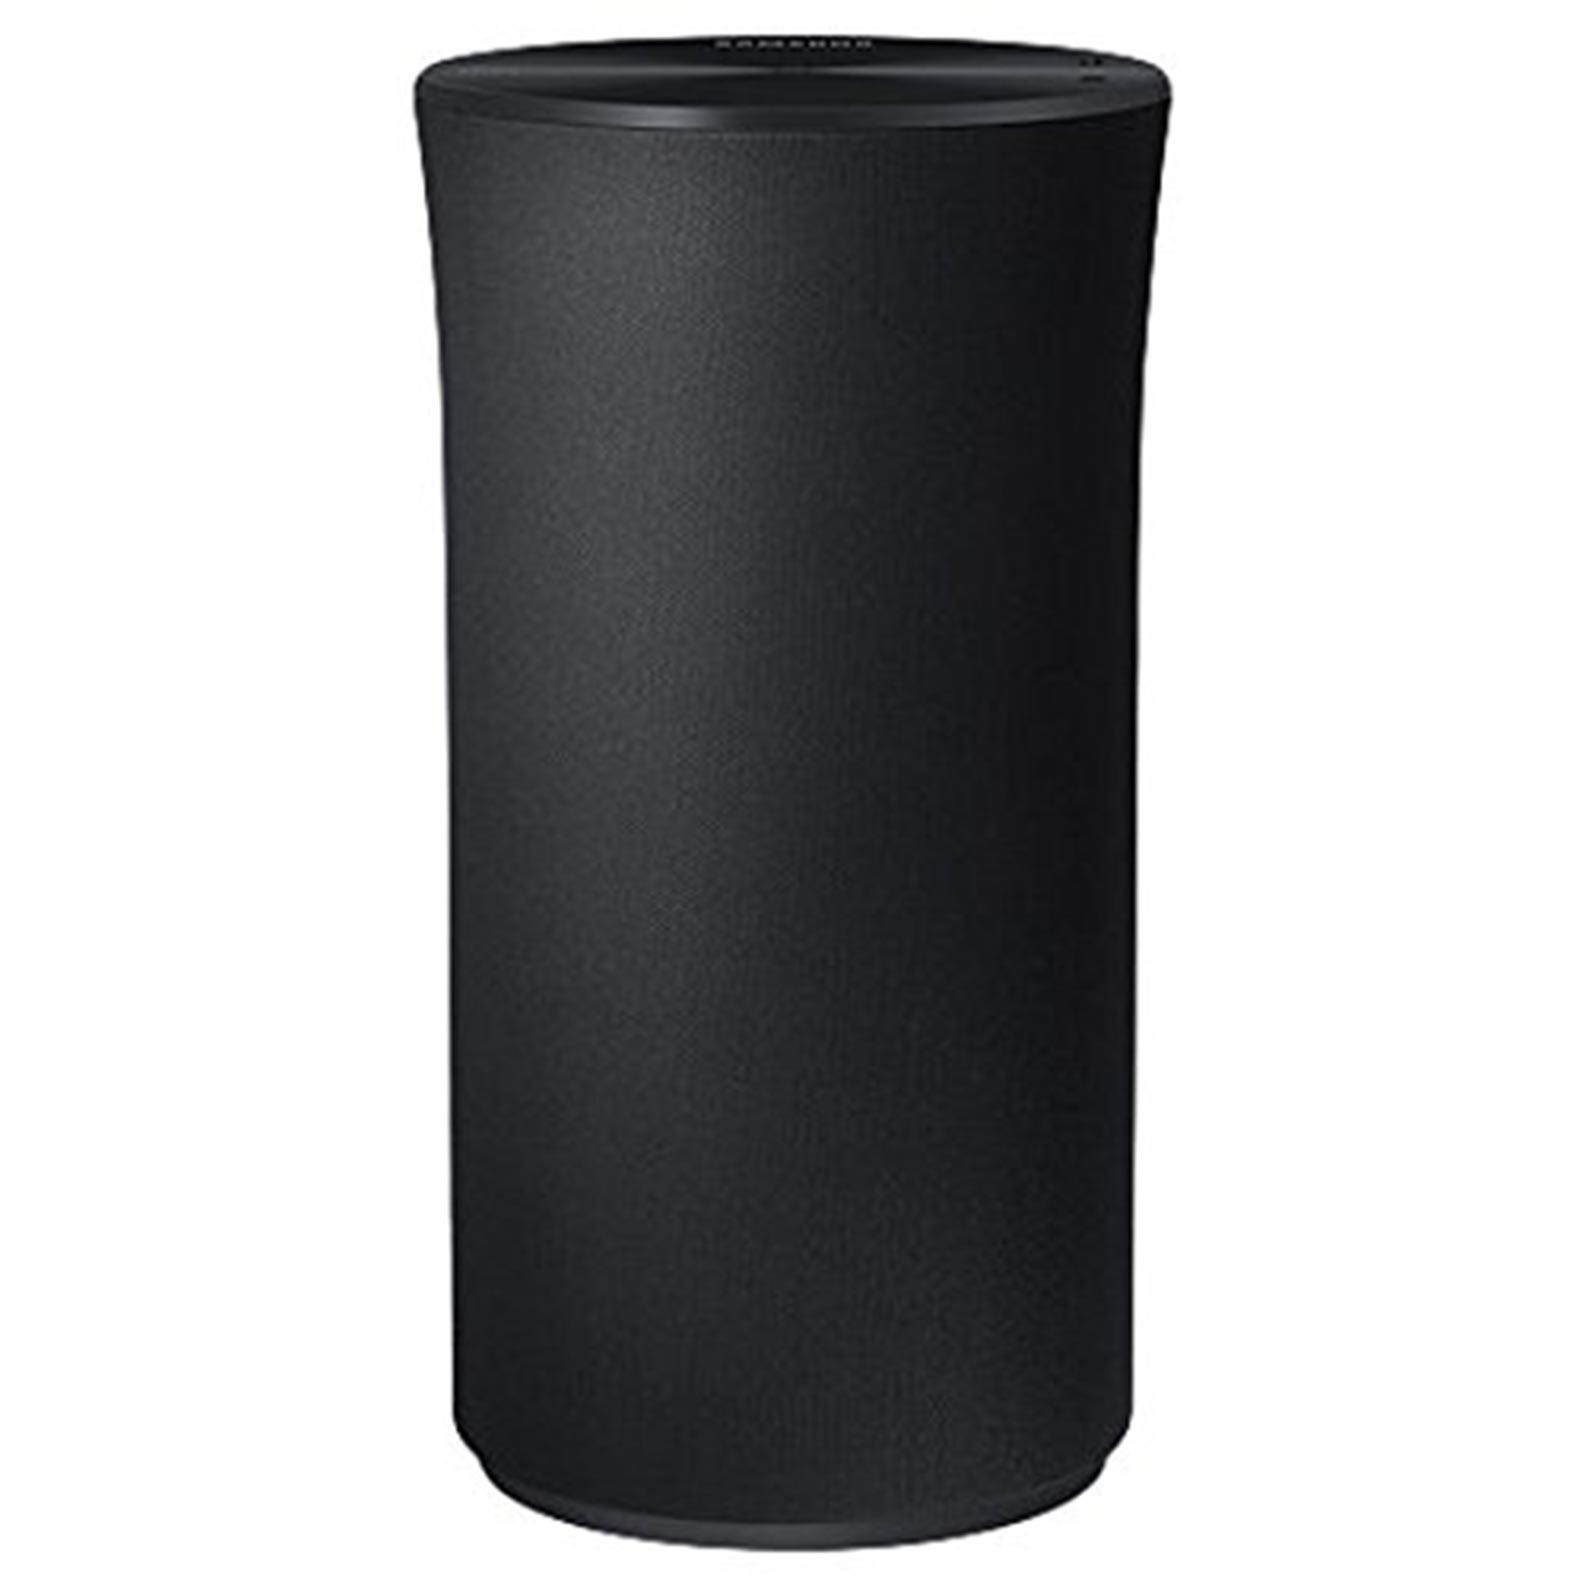 Samsung WAM1500/EN Wireless-360-Soundanlage schwarz